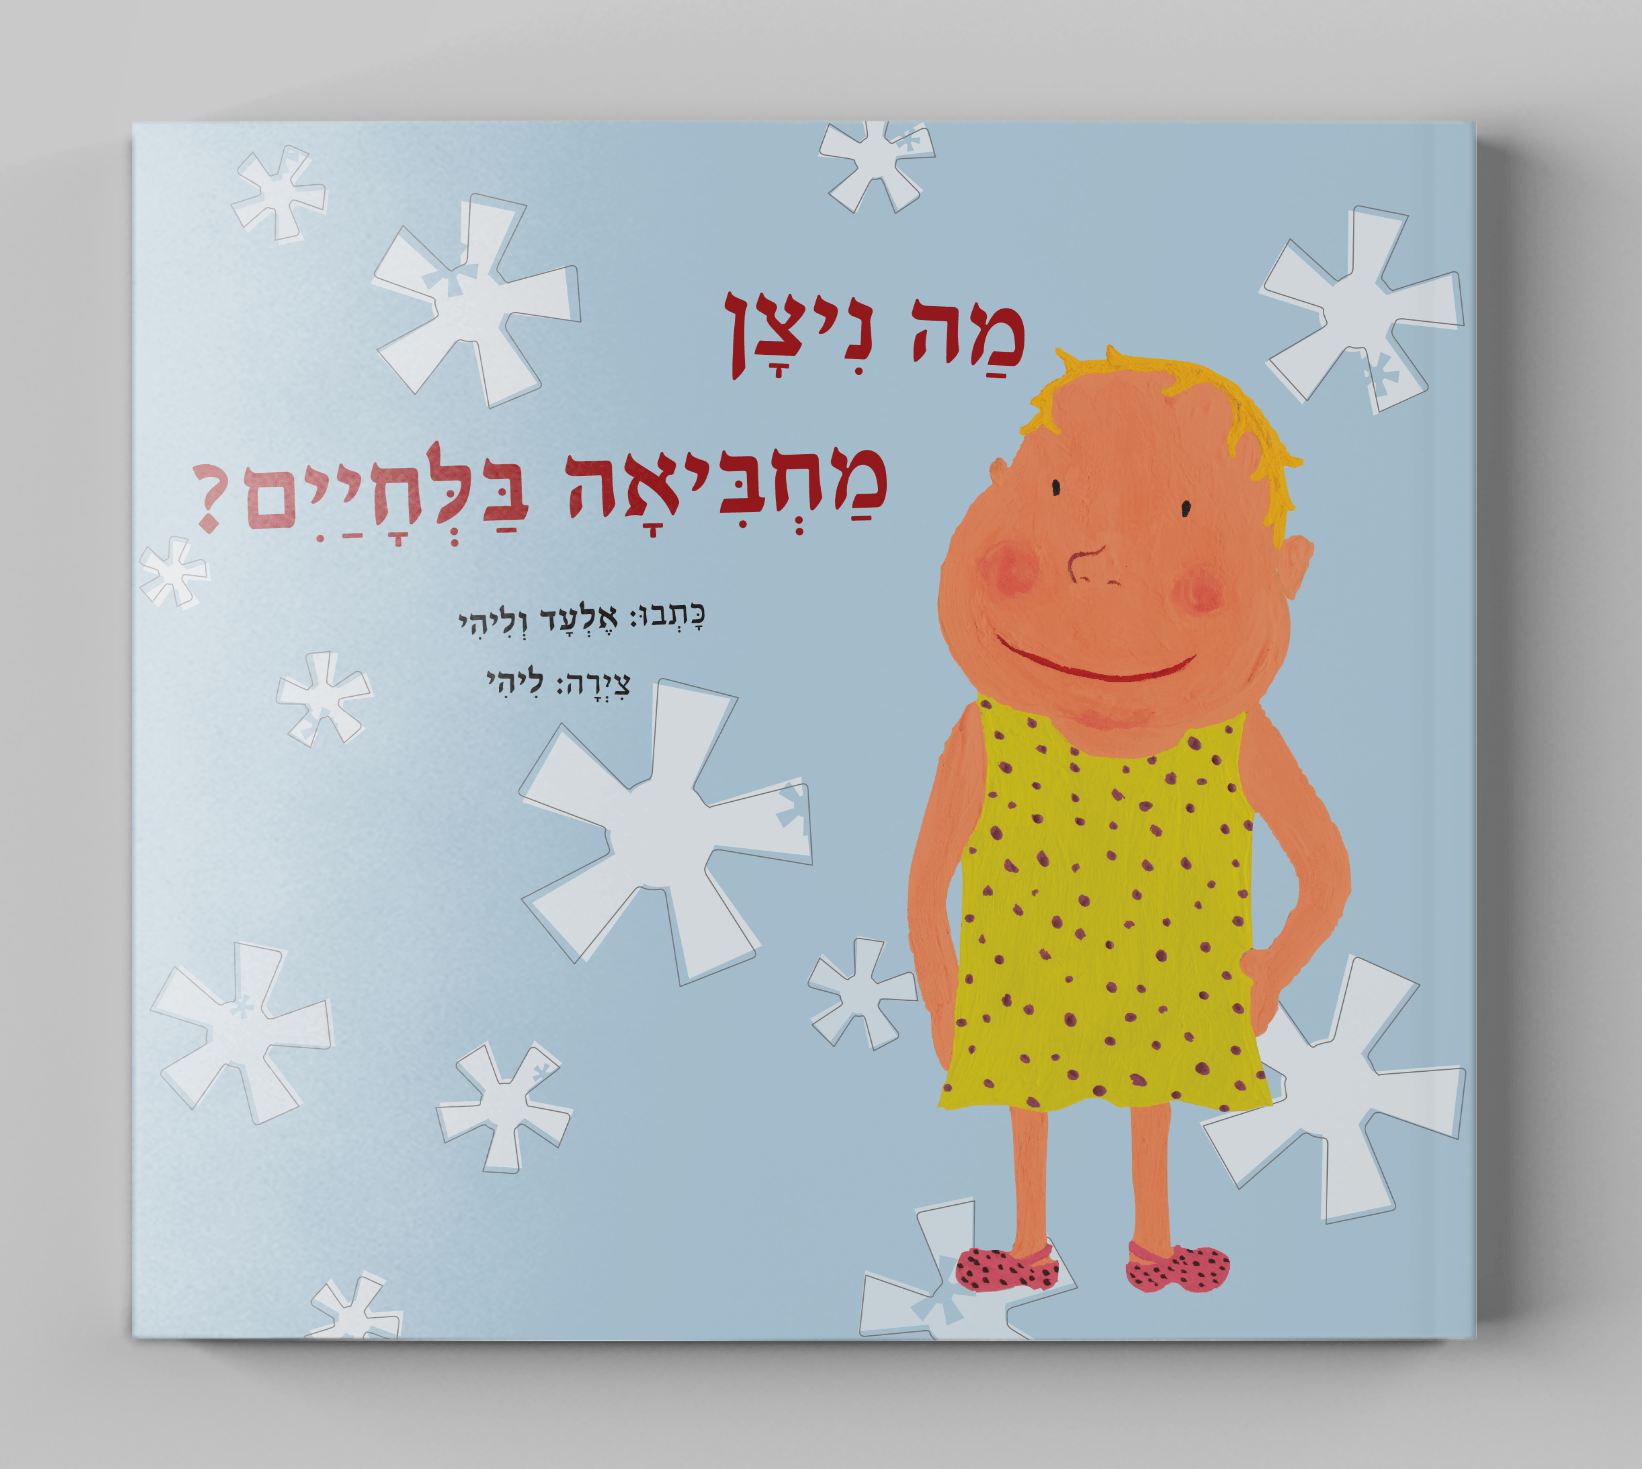 https://bigeyes.co.il/wp-content/uploads/2019/04/Nitzan-cover.png